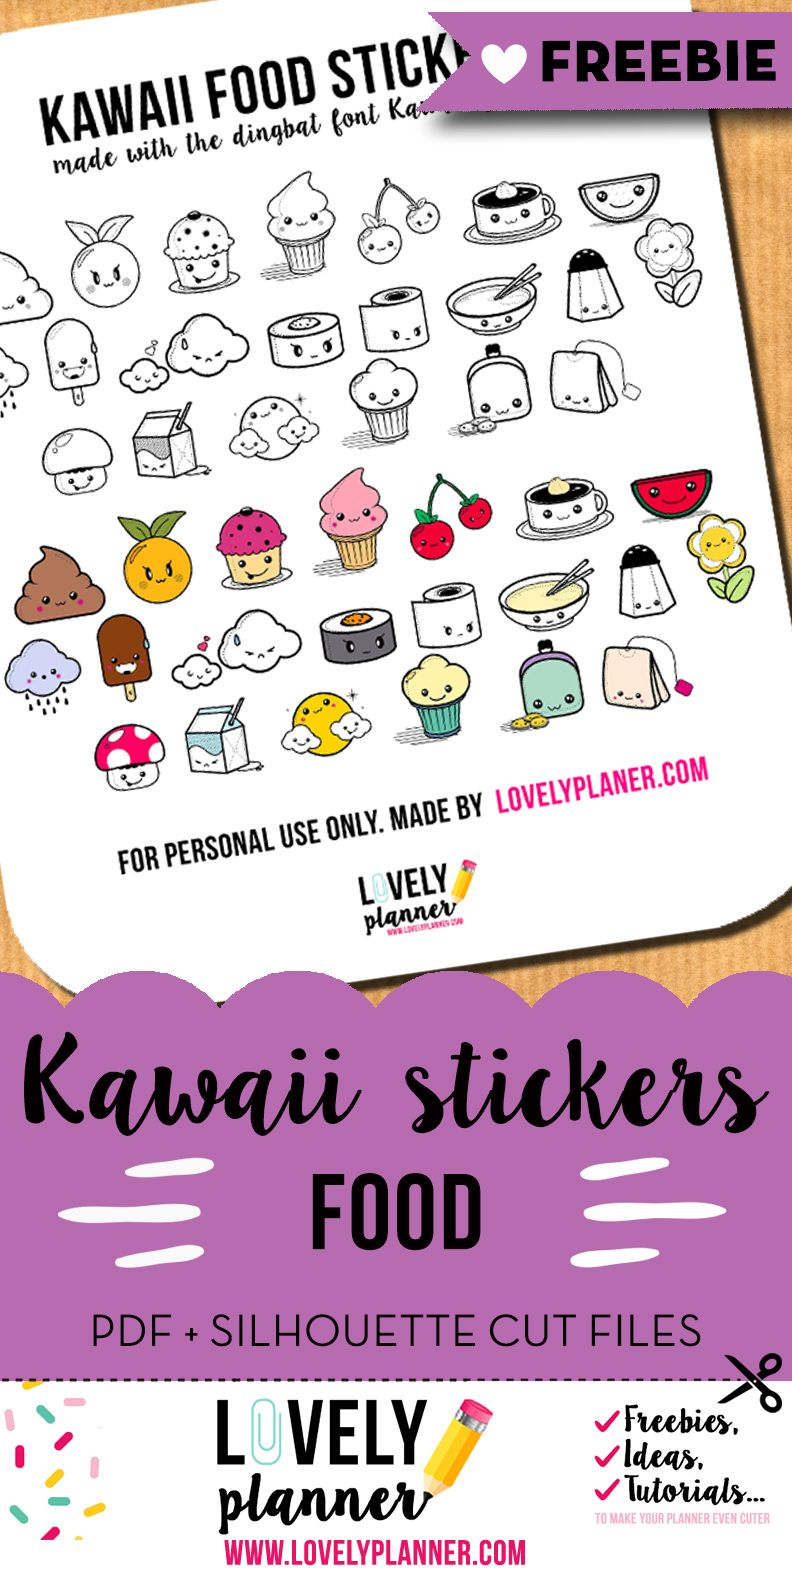 Freebie Cute Food Stickers For Your Planner Free Printable